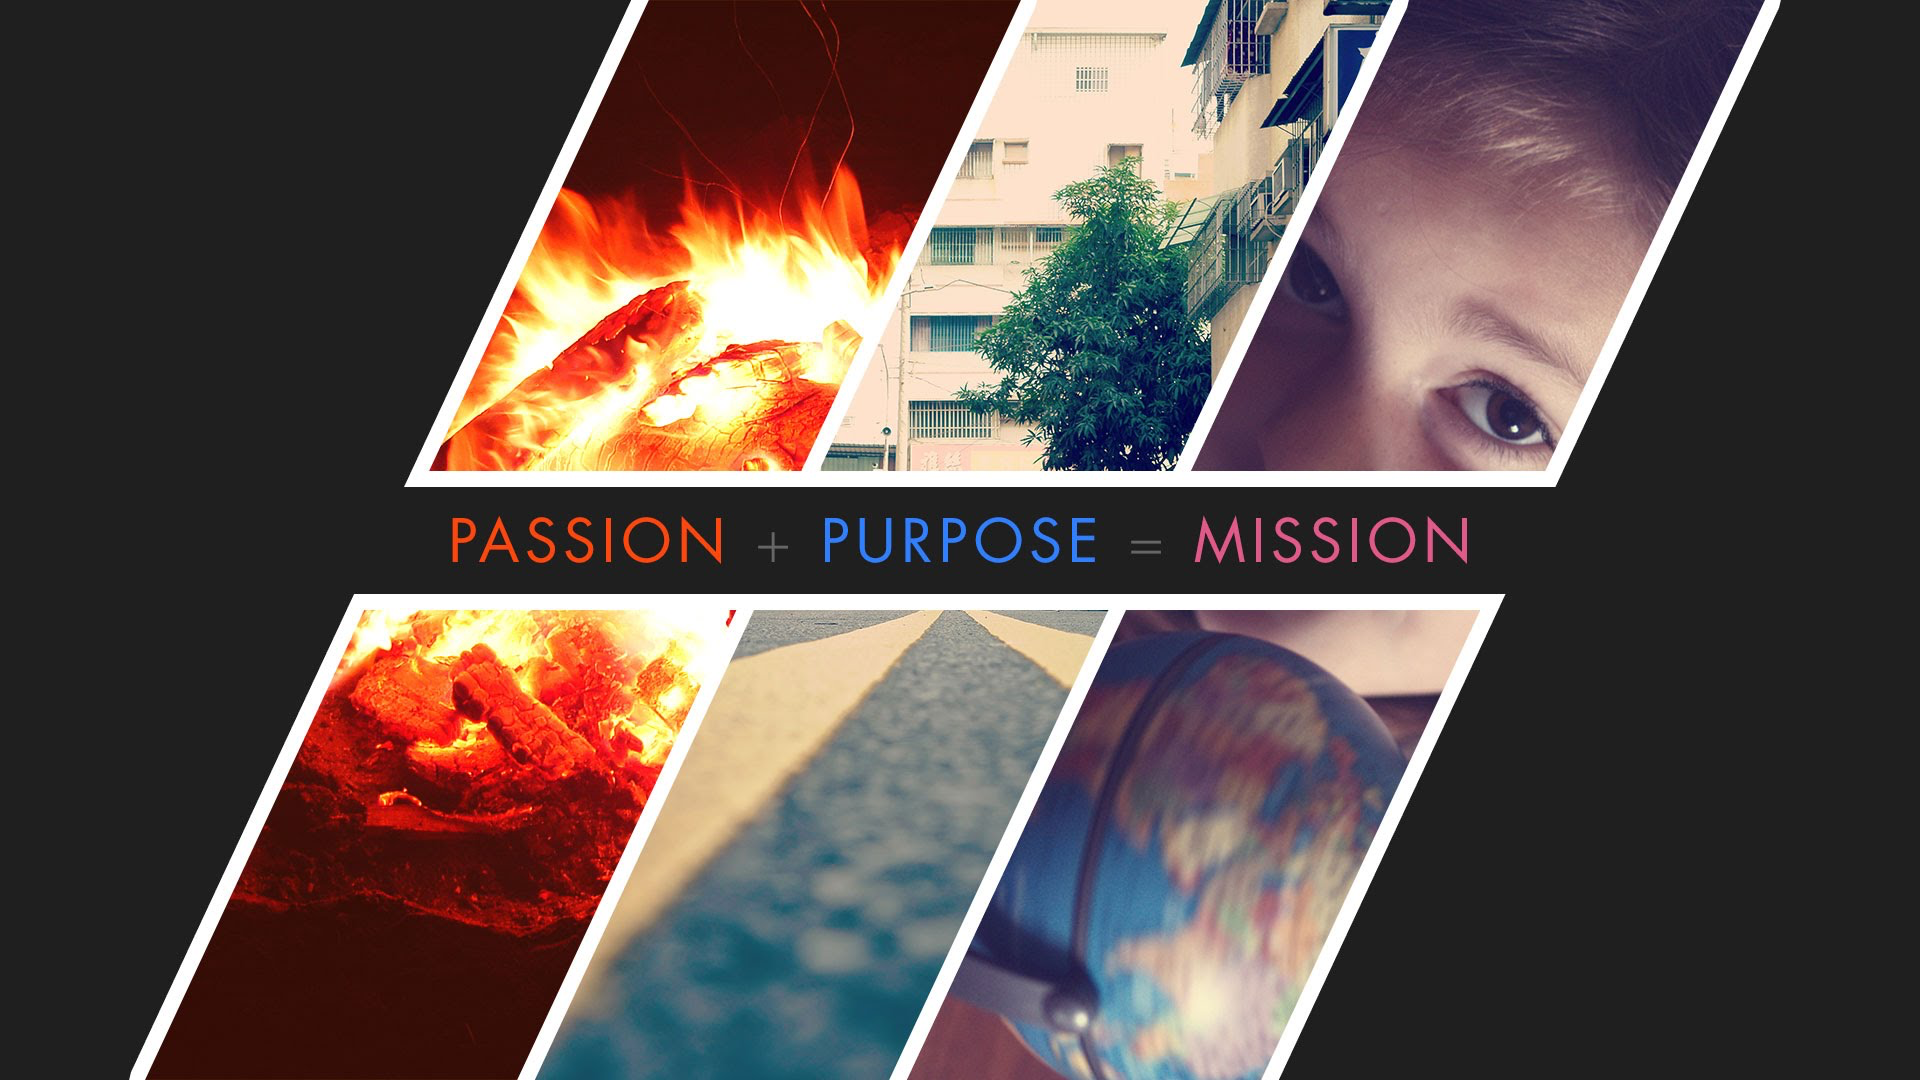 Passion + Purpose = Mission